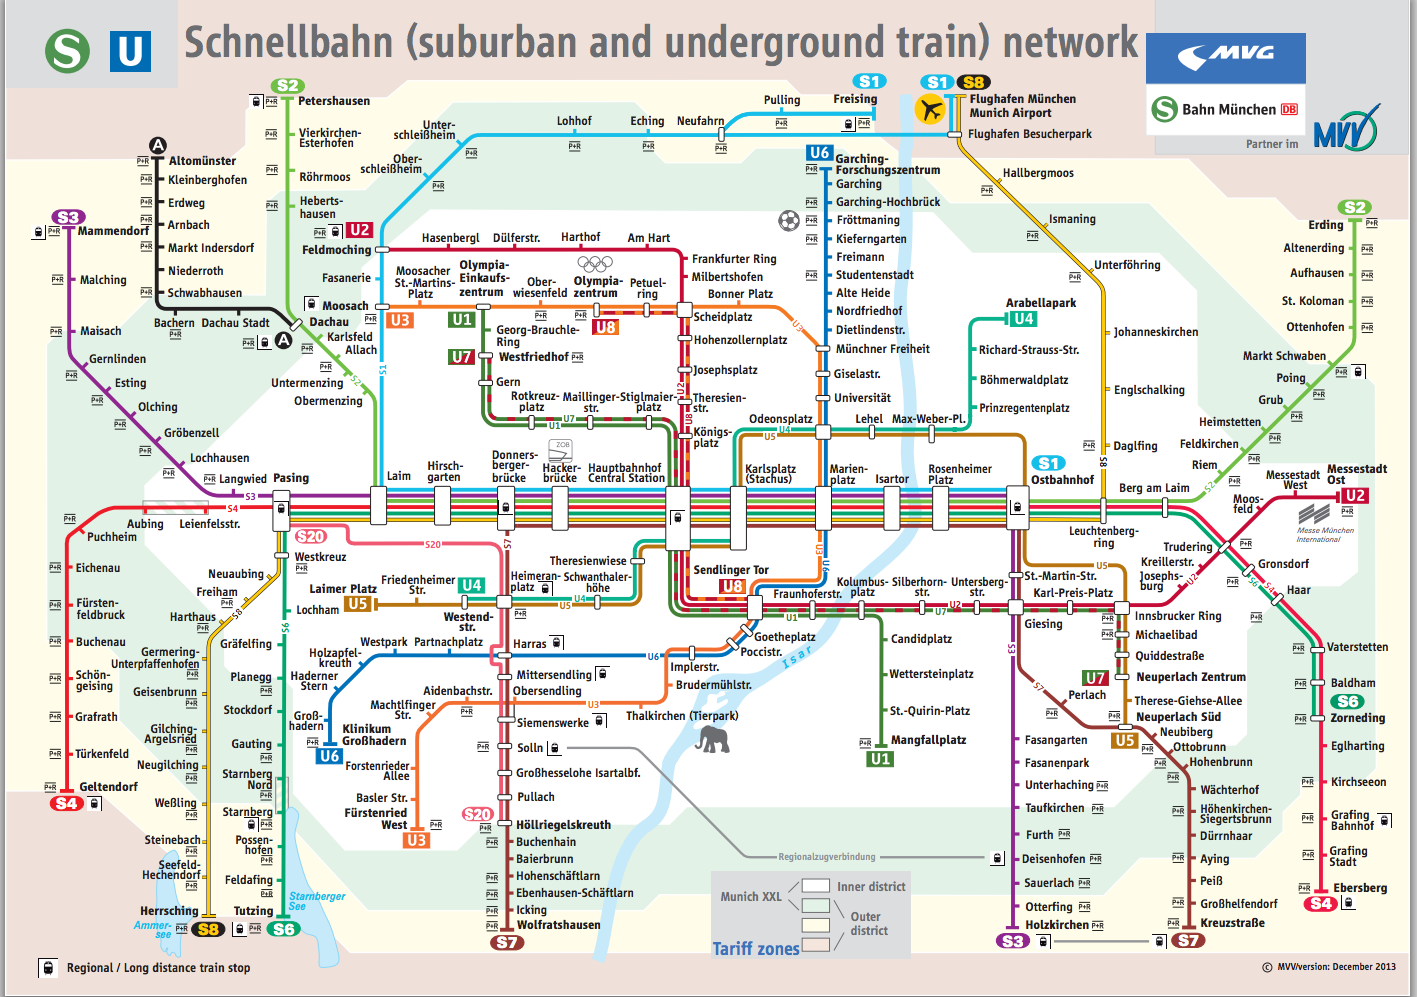 public transport in Munich all important routes on one map